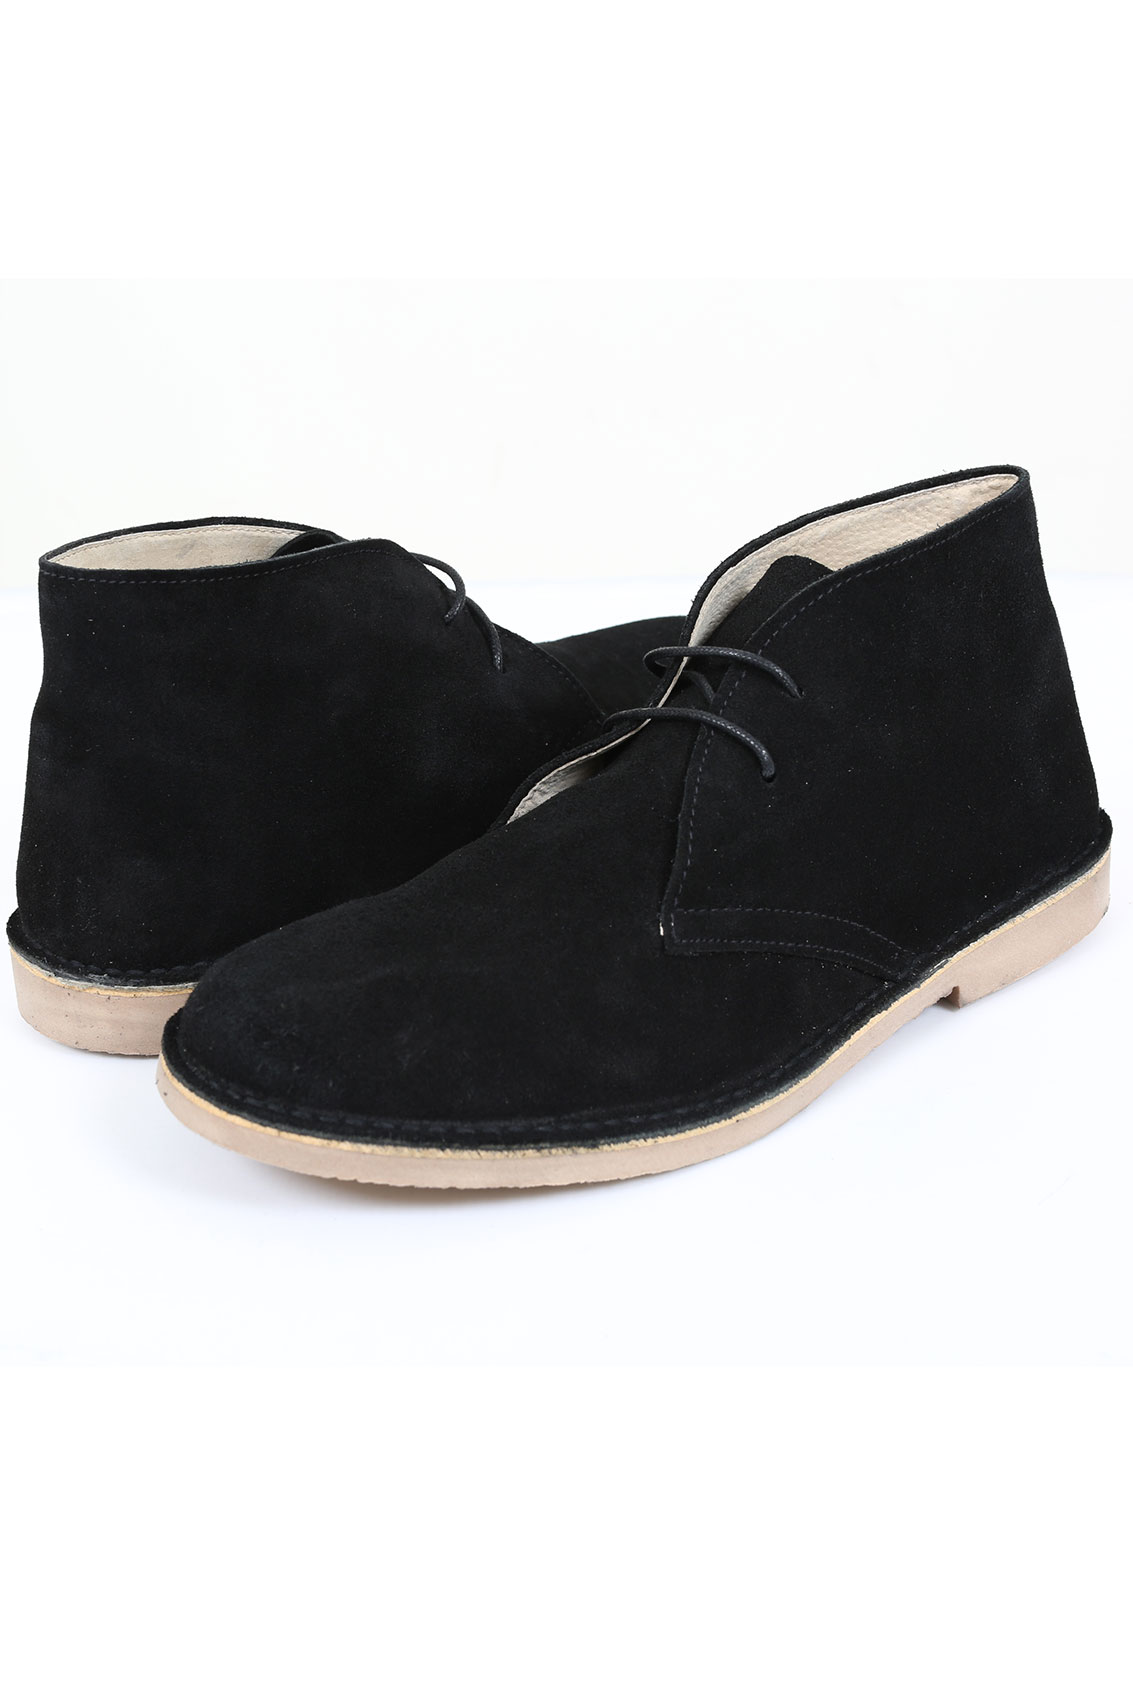 black suede desert boot in wide fit